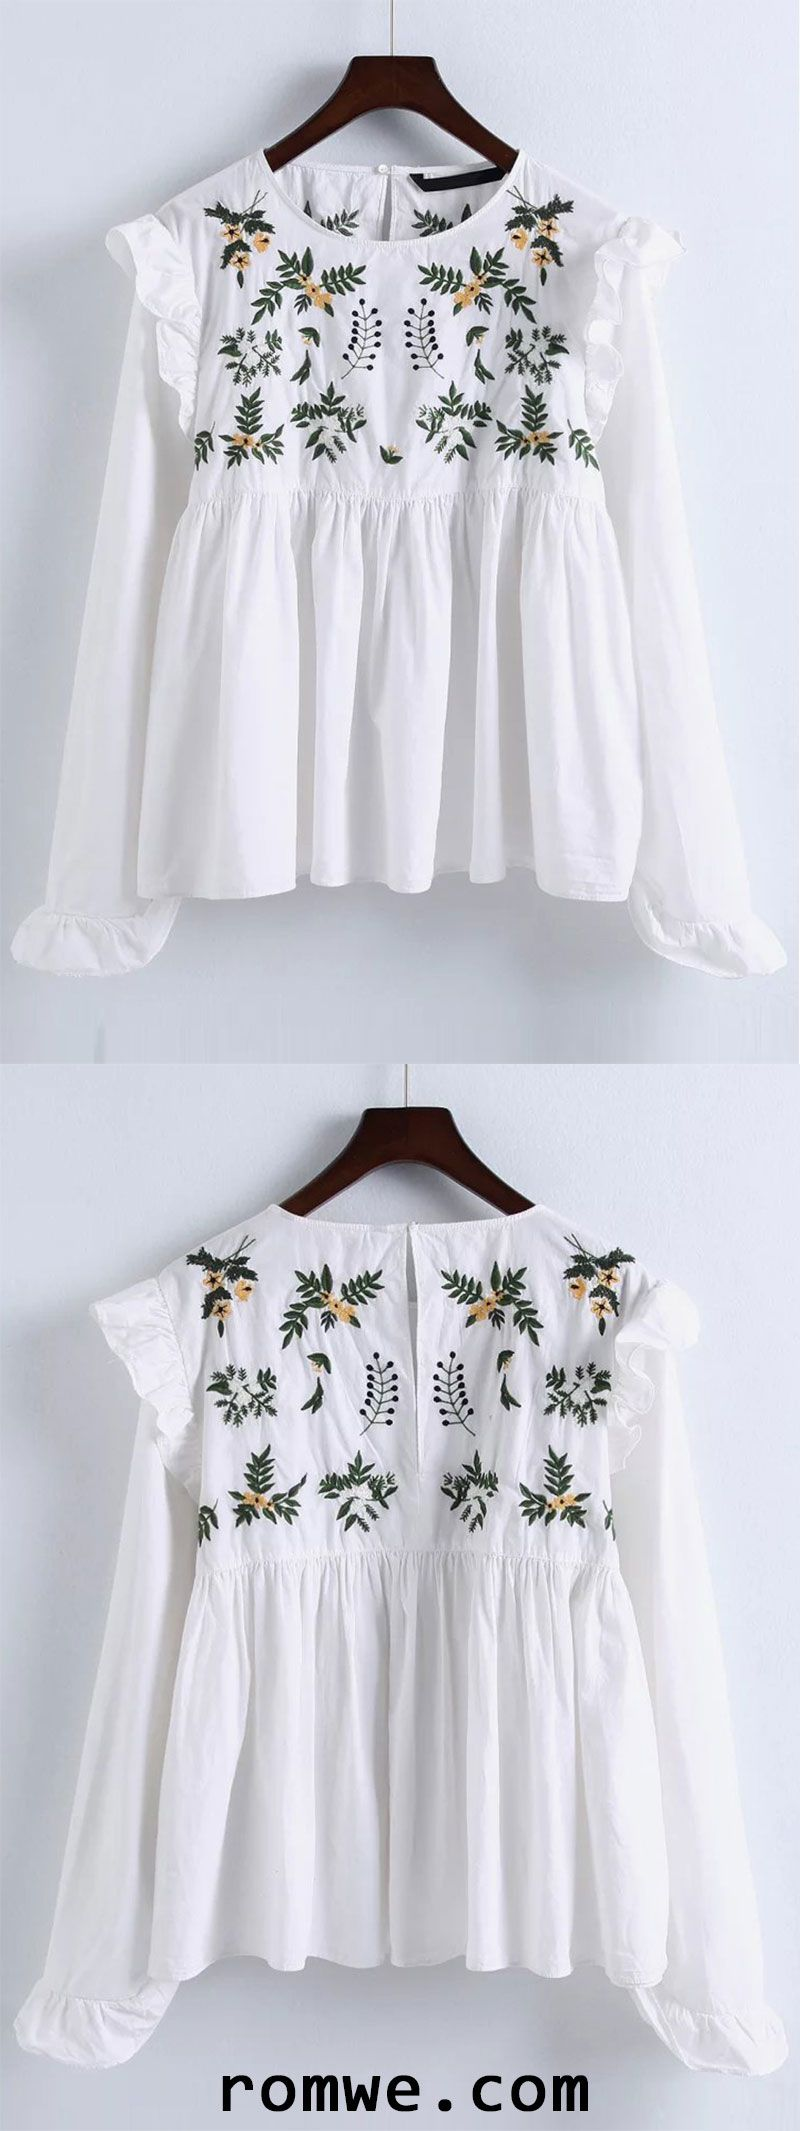 White Embroidery Ruffle Trim Pleated Blouse #whiteembroidery